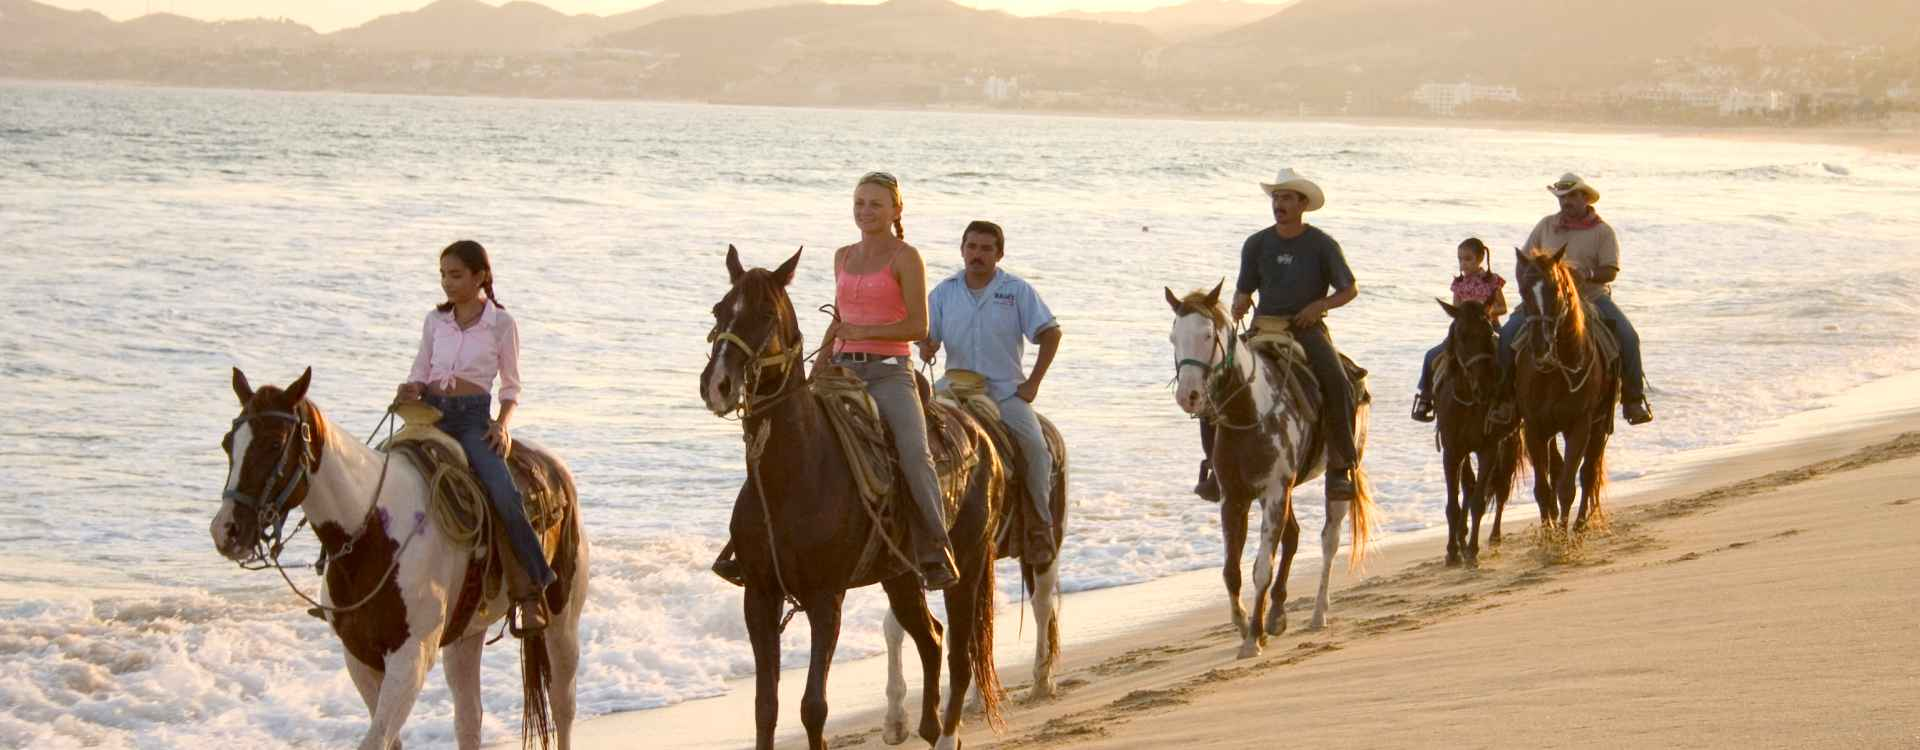 Horseback Riding Tour in Ixtapa Zihuatanejo Mexico | Pacific Tours Ixtapa. Join us for this horse riding adventure along the magnificent Playa Larga Beach just 25 Minutes away from Ixtapa Zihuatanejo, enjoy the breeze of the ocean while riding these trained horses along the Ixtapa Zihuatanejo beaches